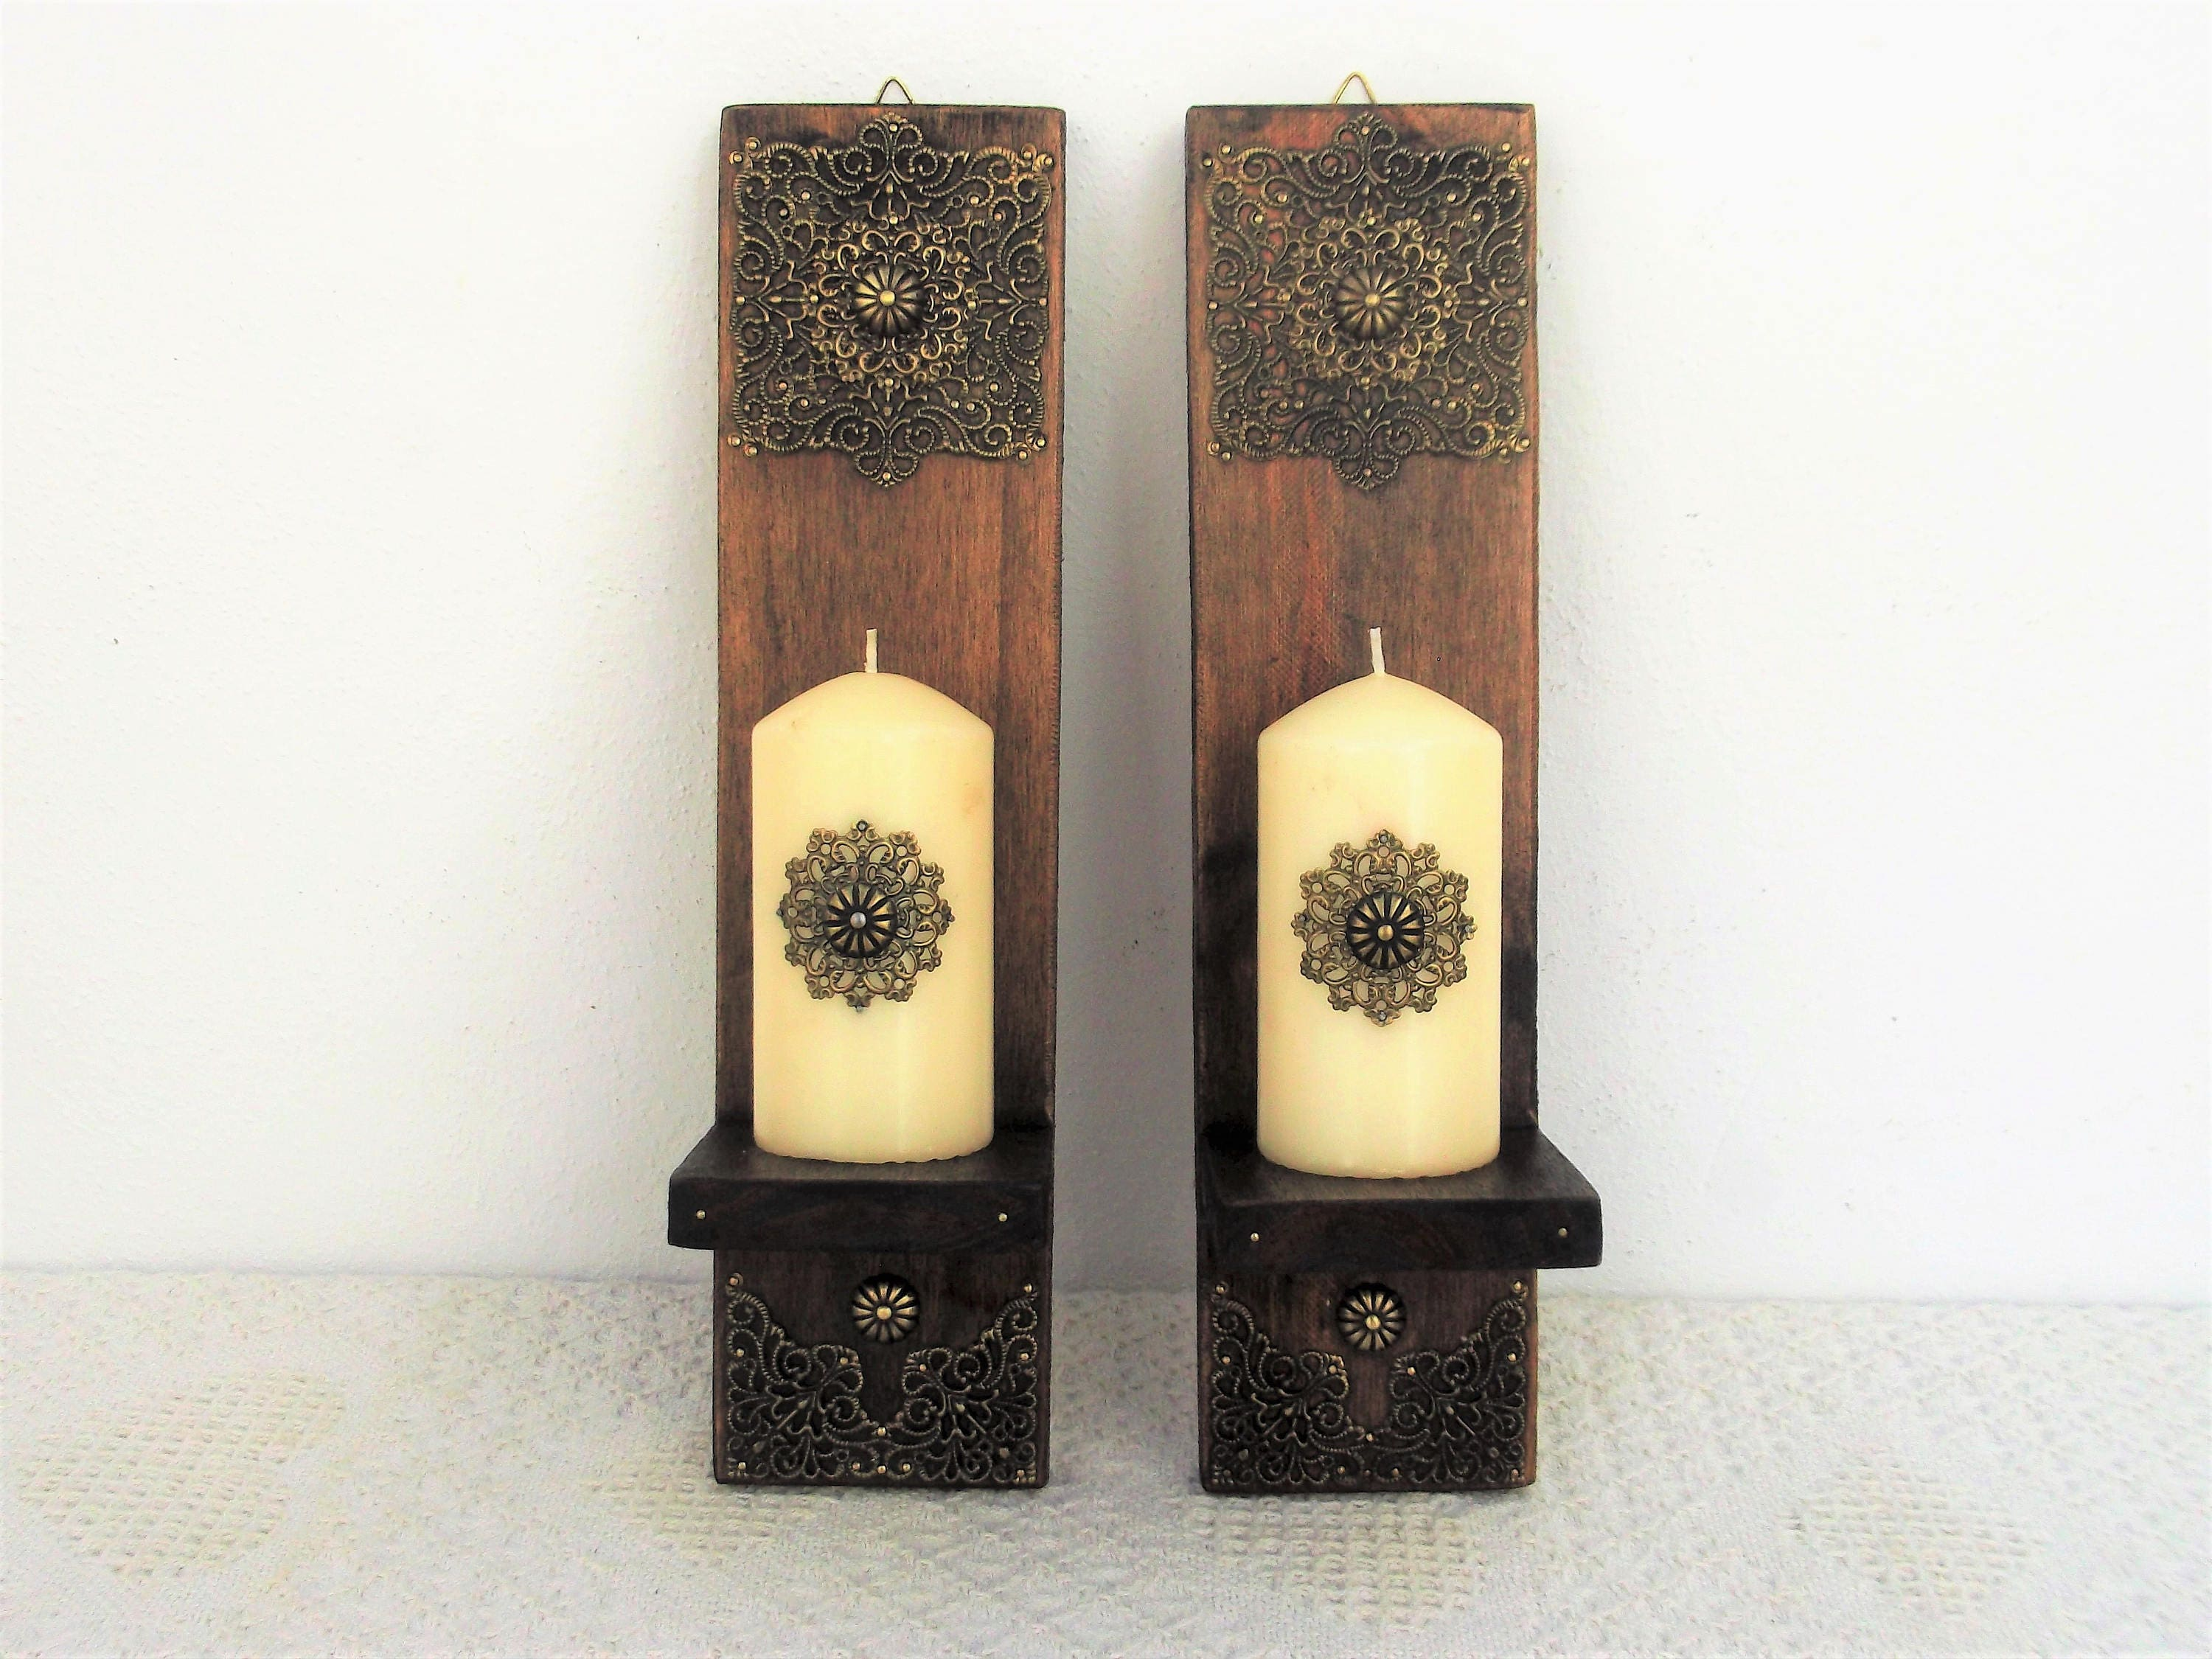 Candle Sconces Rustic Wooden Moroccan Decor Pair of Wood Wall